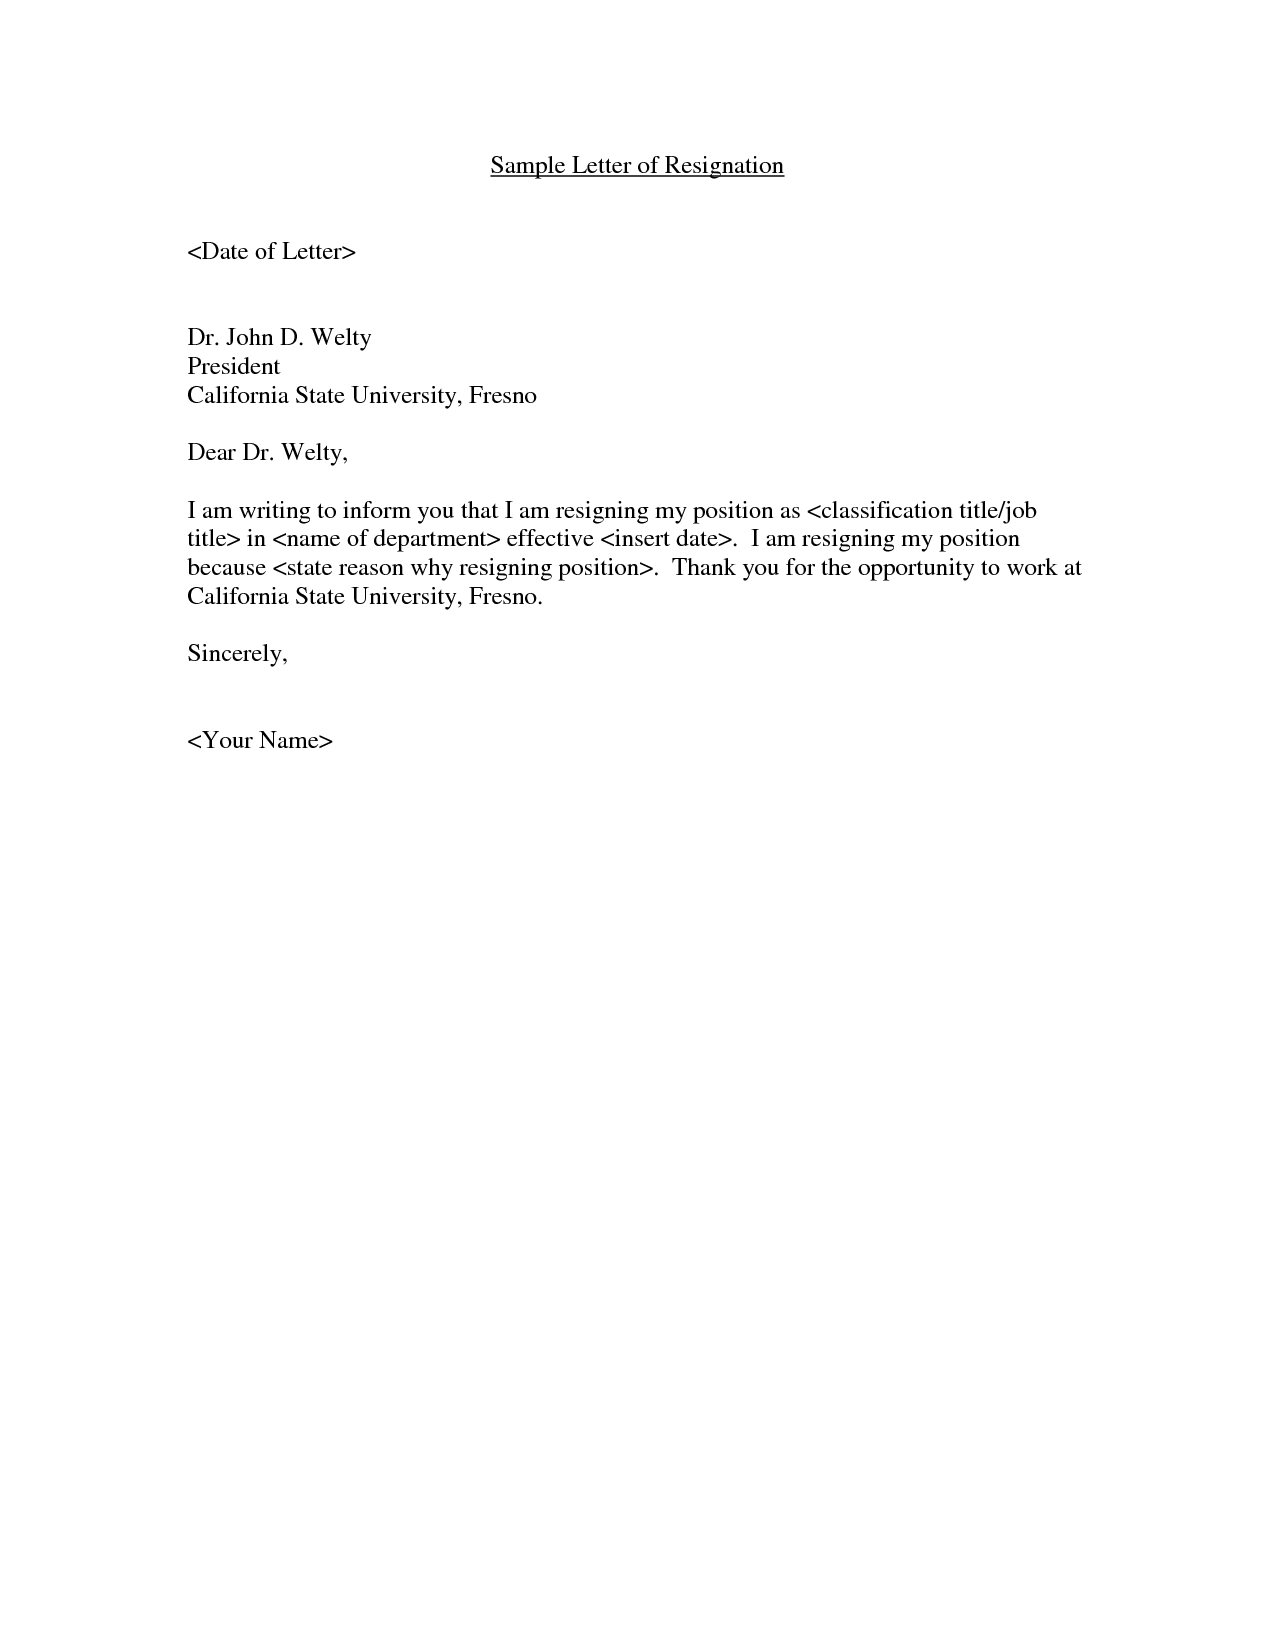 Example Of A Brief Resignation Letter Sample Resignation